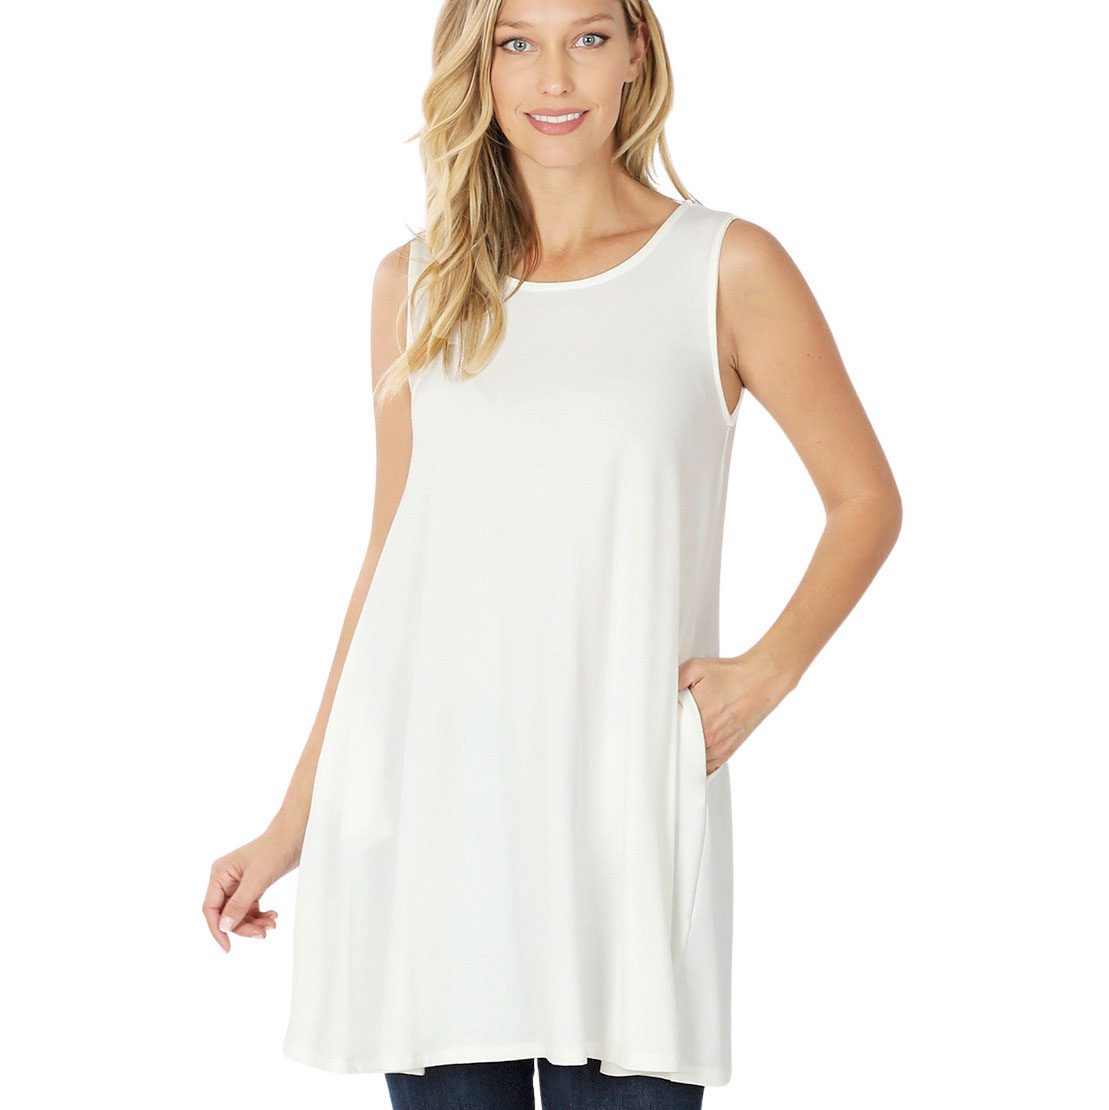 Tops - Round Neck Sleeveless Tunic with Side 9926P